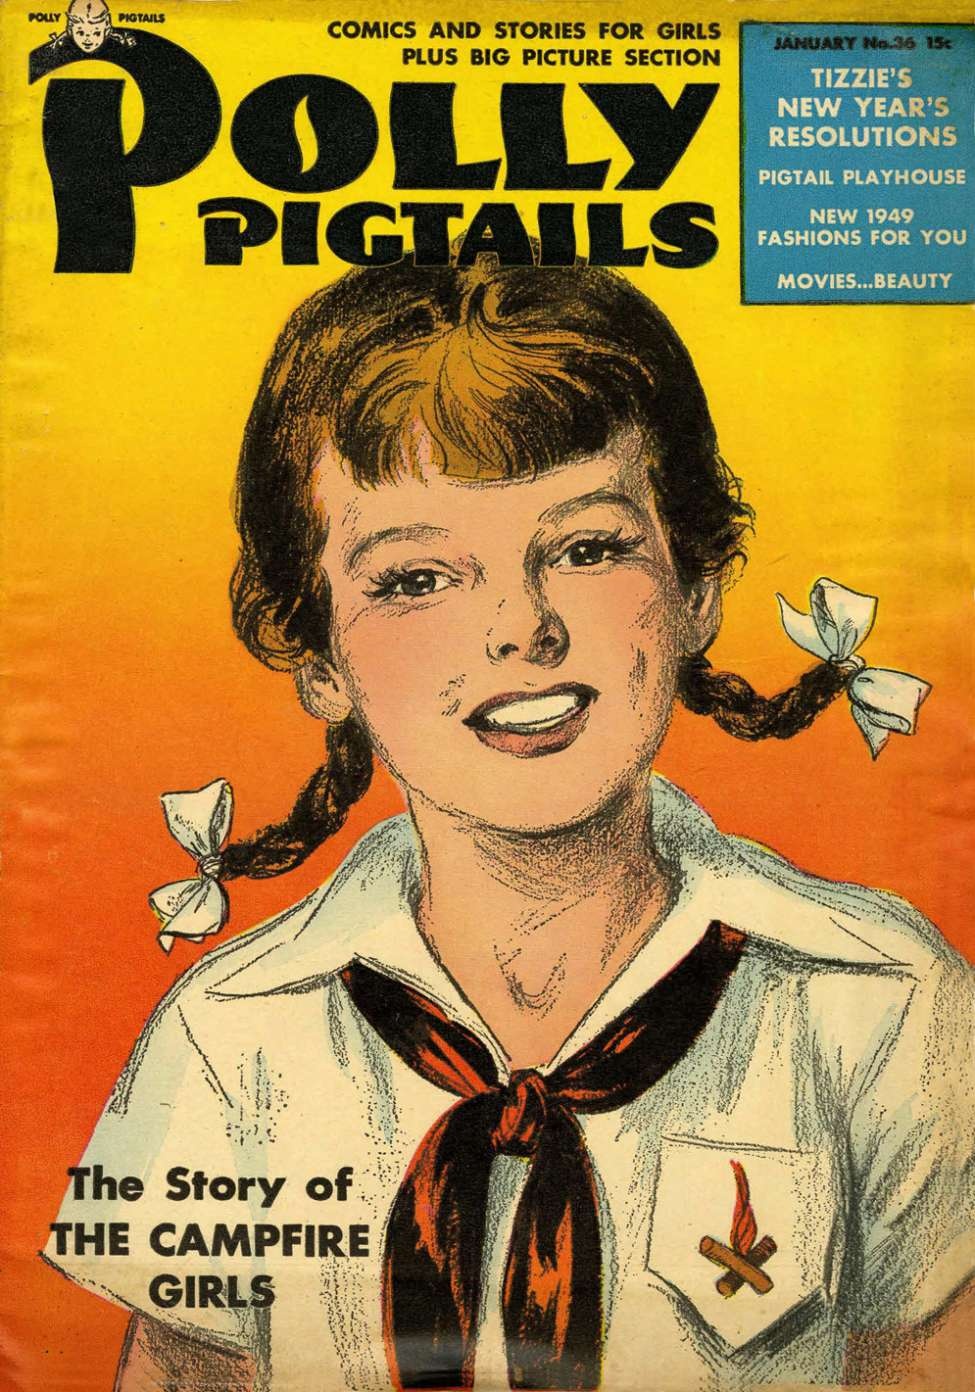 Comic Book Cover For Polly Pigtails #36